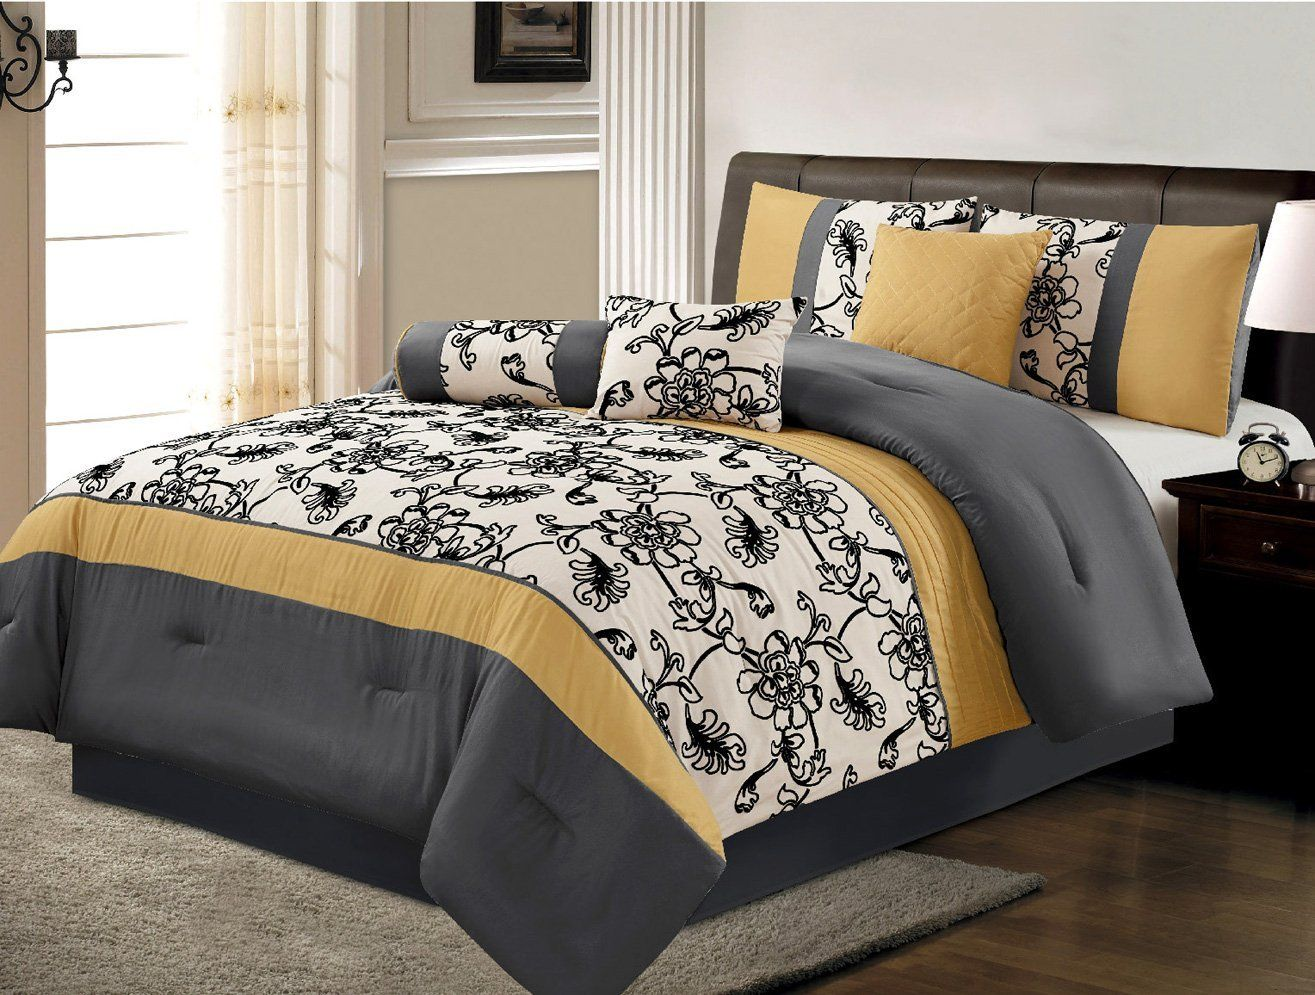 7 piece luxury yellow black white grey floral comforter set queen size bedding ease. Black Bedroom Furniture Sets. Home Design Ideas